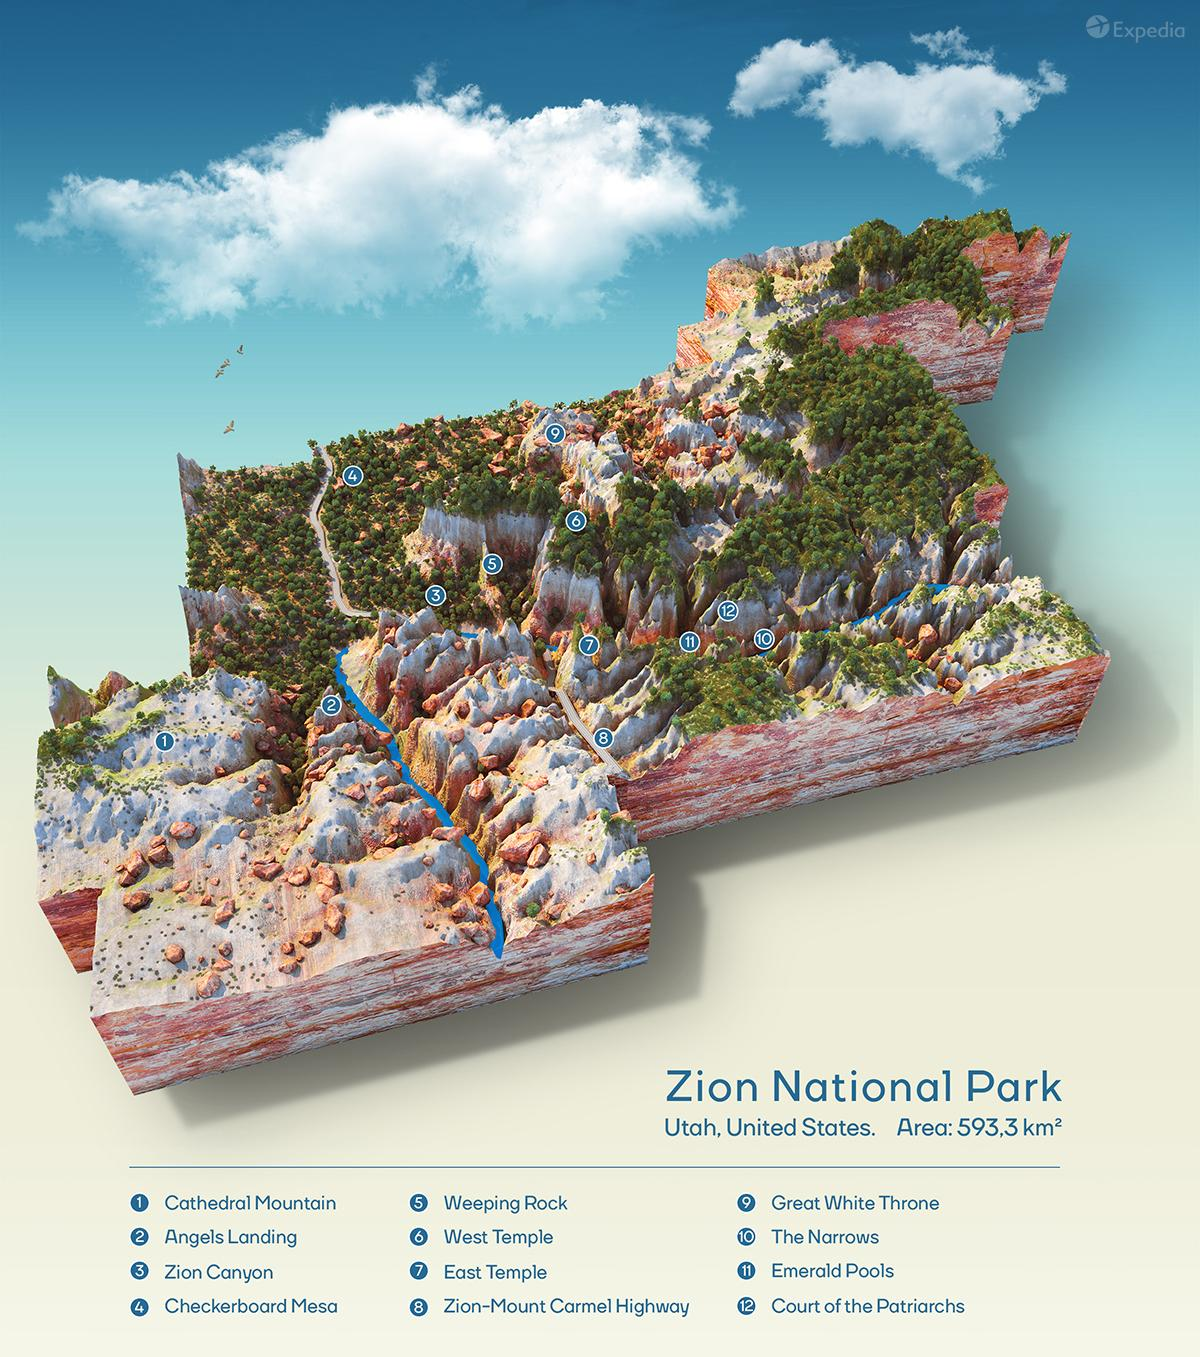 A topographic map of Zion National Park